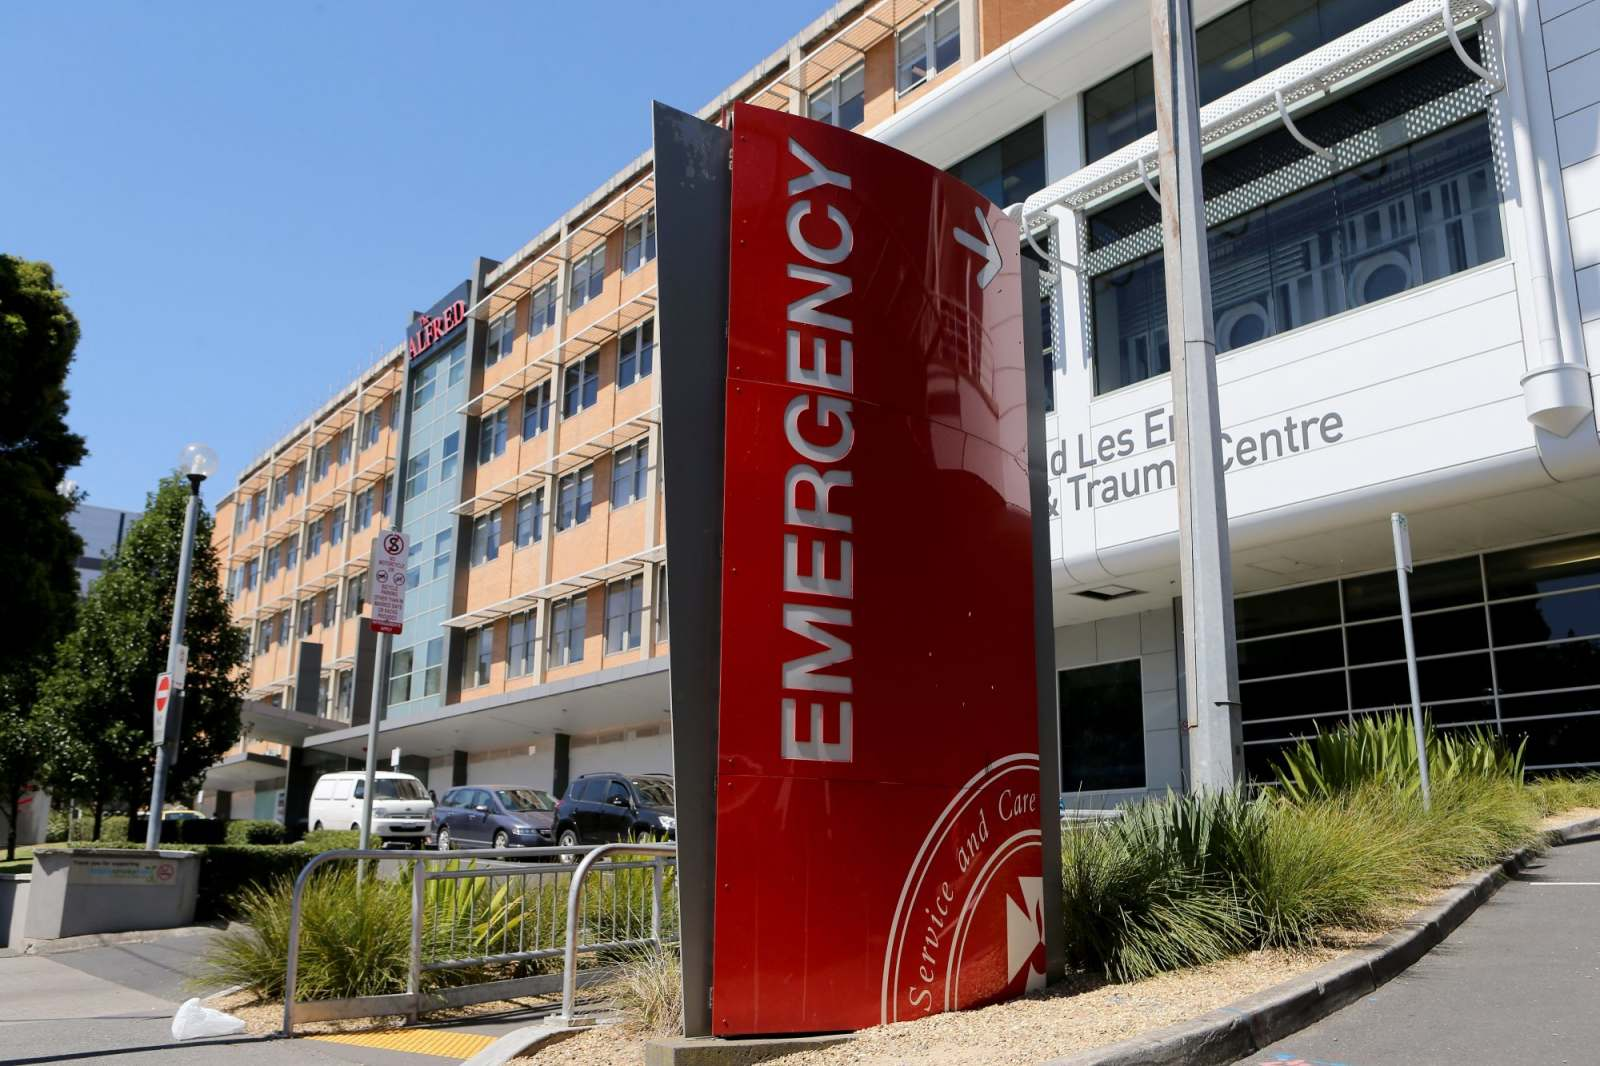 The Alfred hospital deals with multiple suspected cases of coronavirus